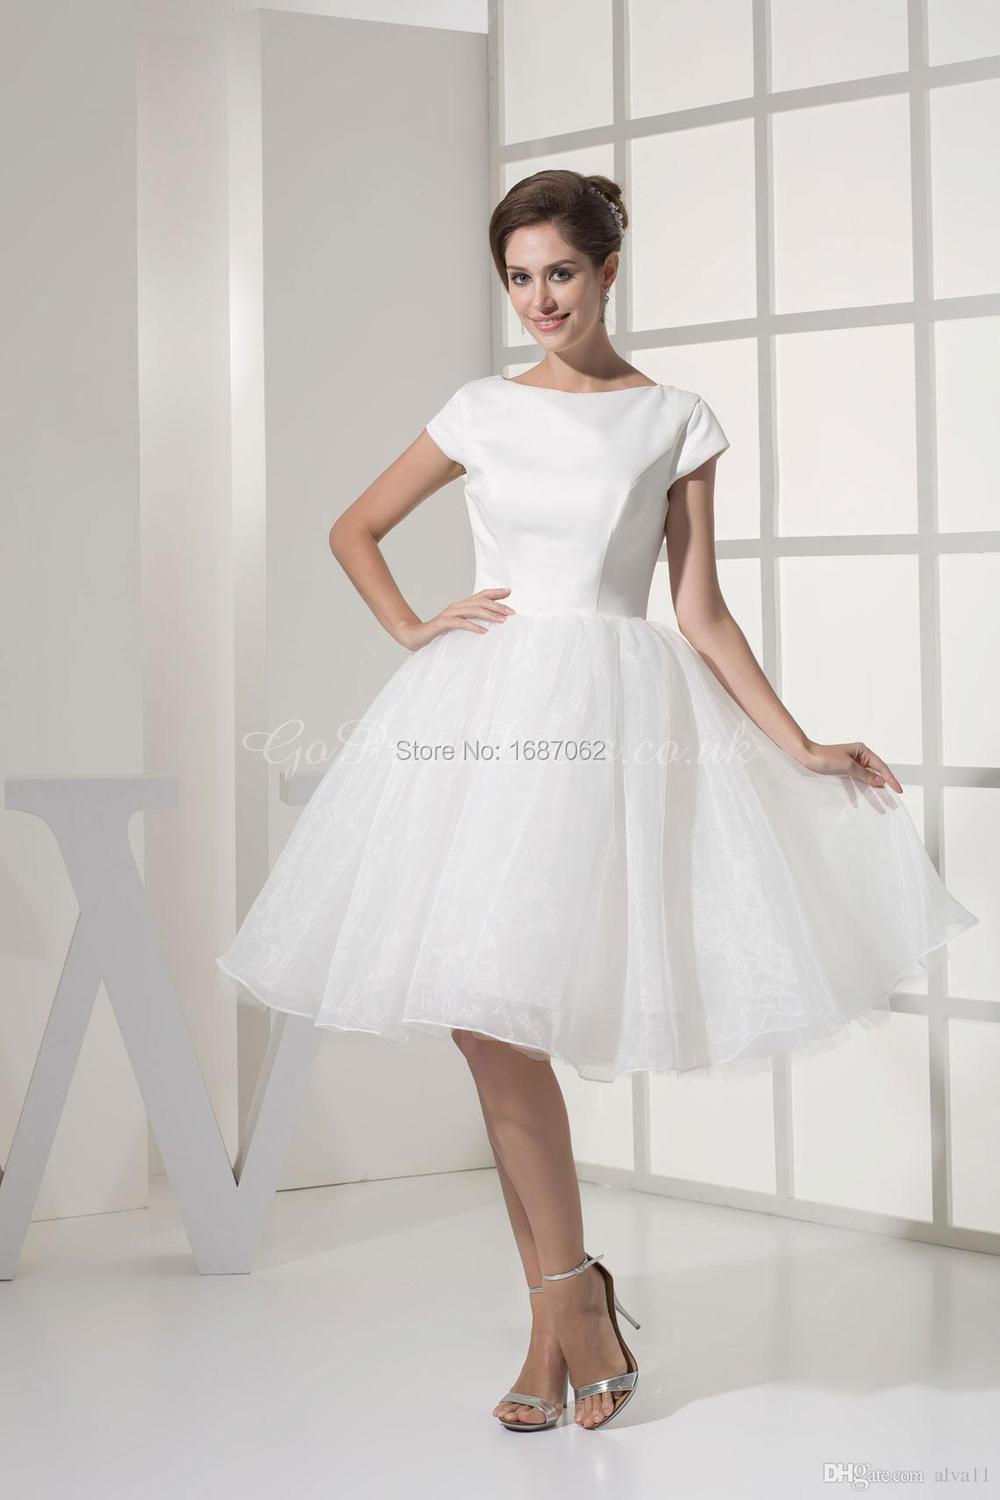 Princess Satin Organza Short Bridal Dresses Bateau Knee-Length Short Sleeves  White Casual Wedding Dresses 706f48844f27